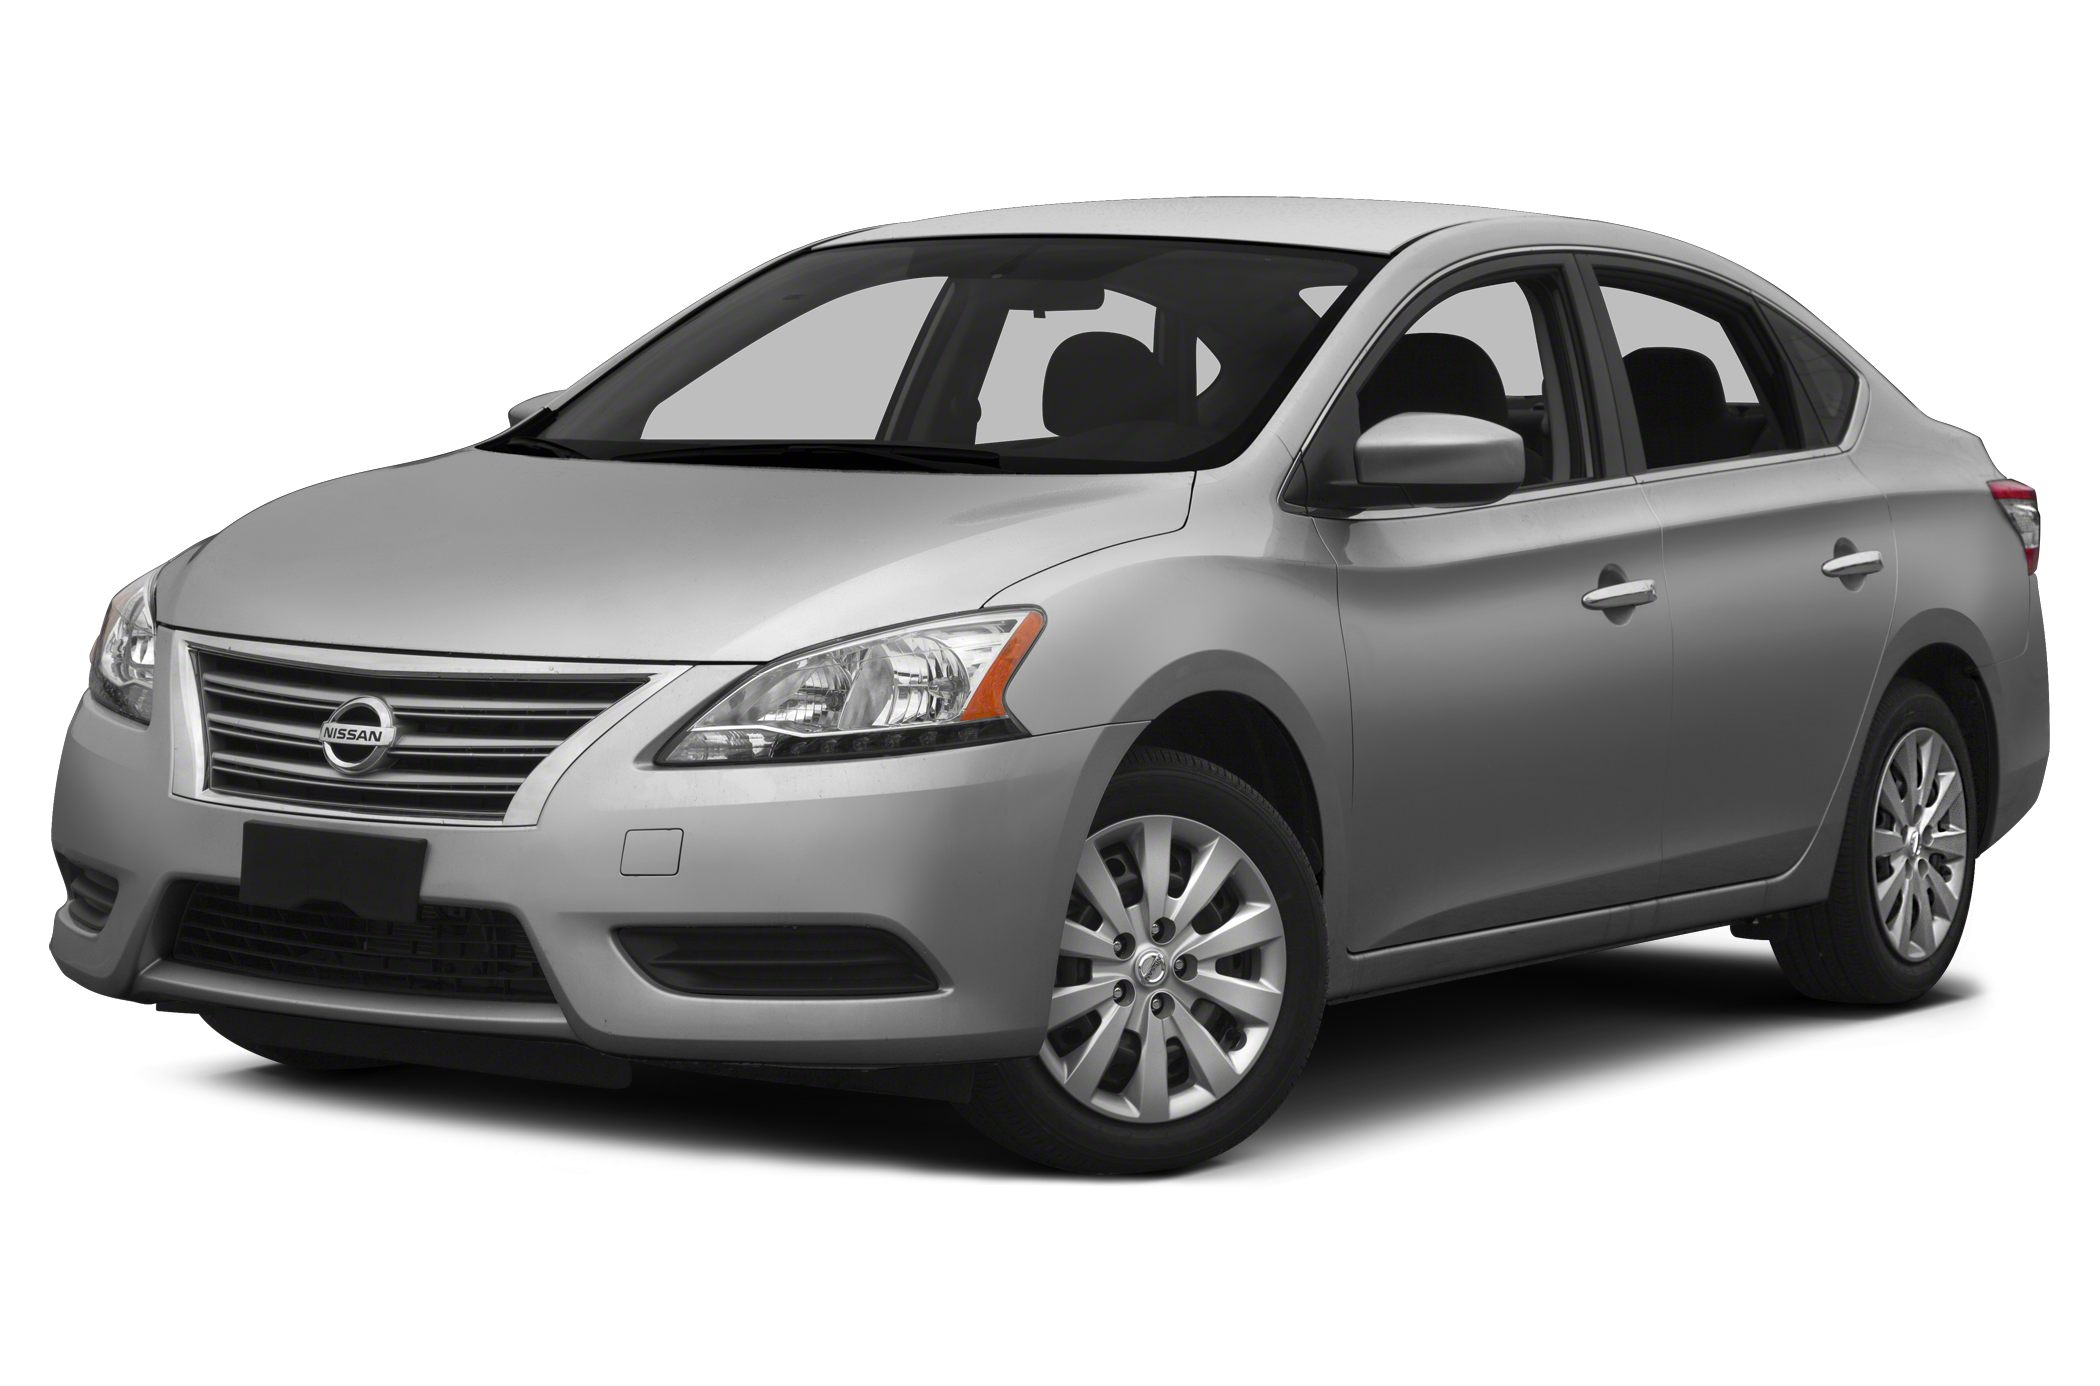 2013 Nissan Sentra S Vehicle Options ABS Brakes Interval Wipers Steering Wheel Mounted Controls Ai